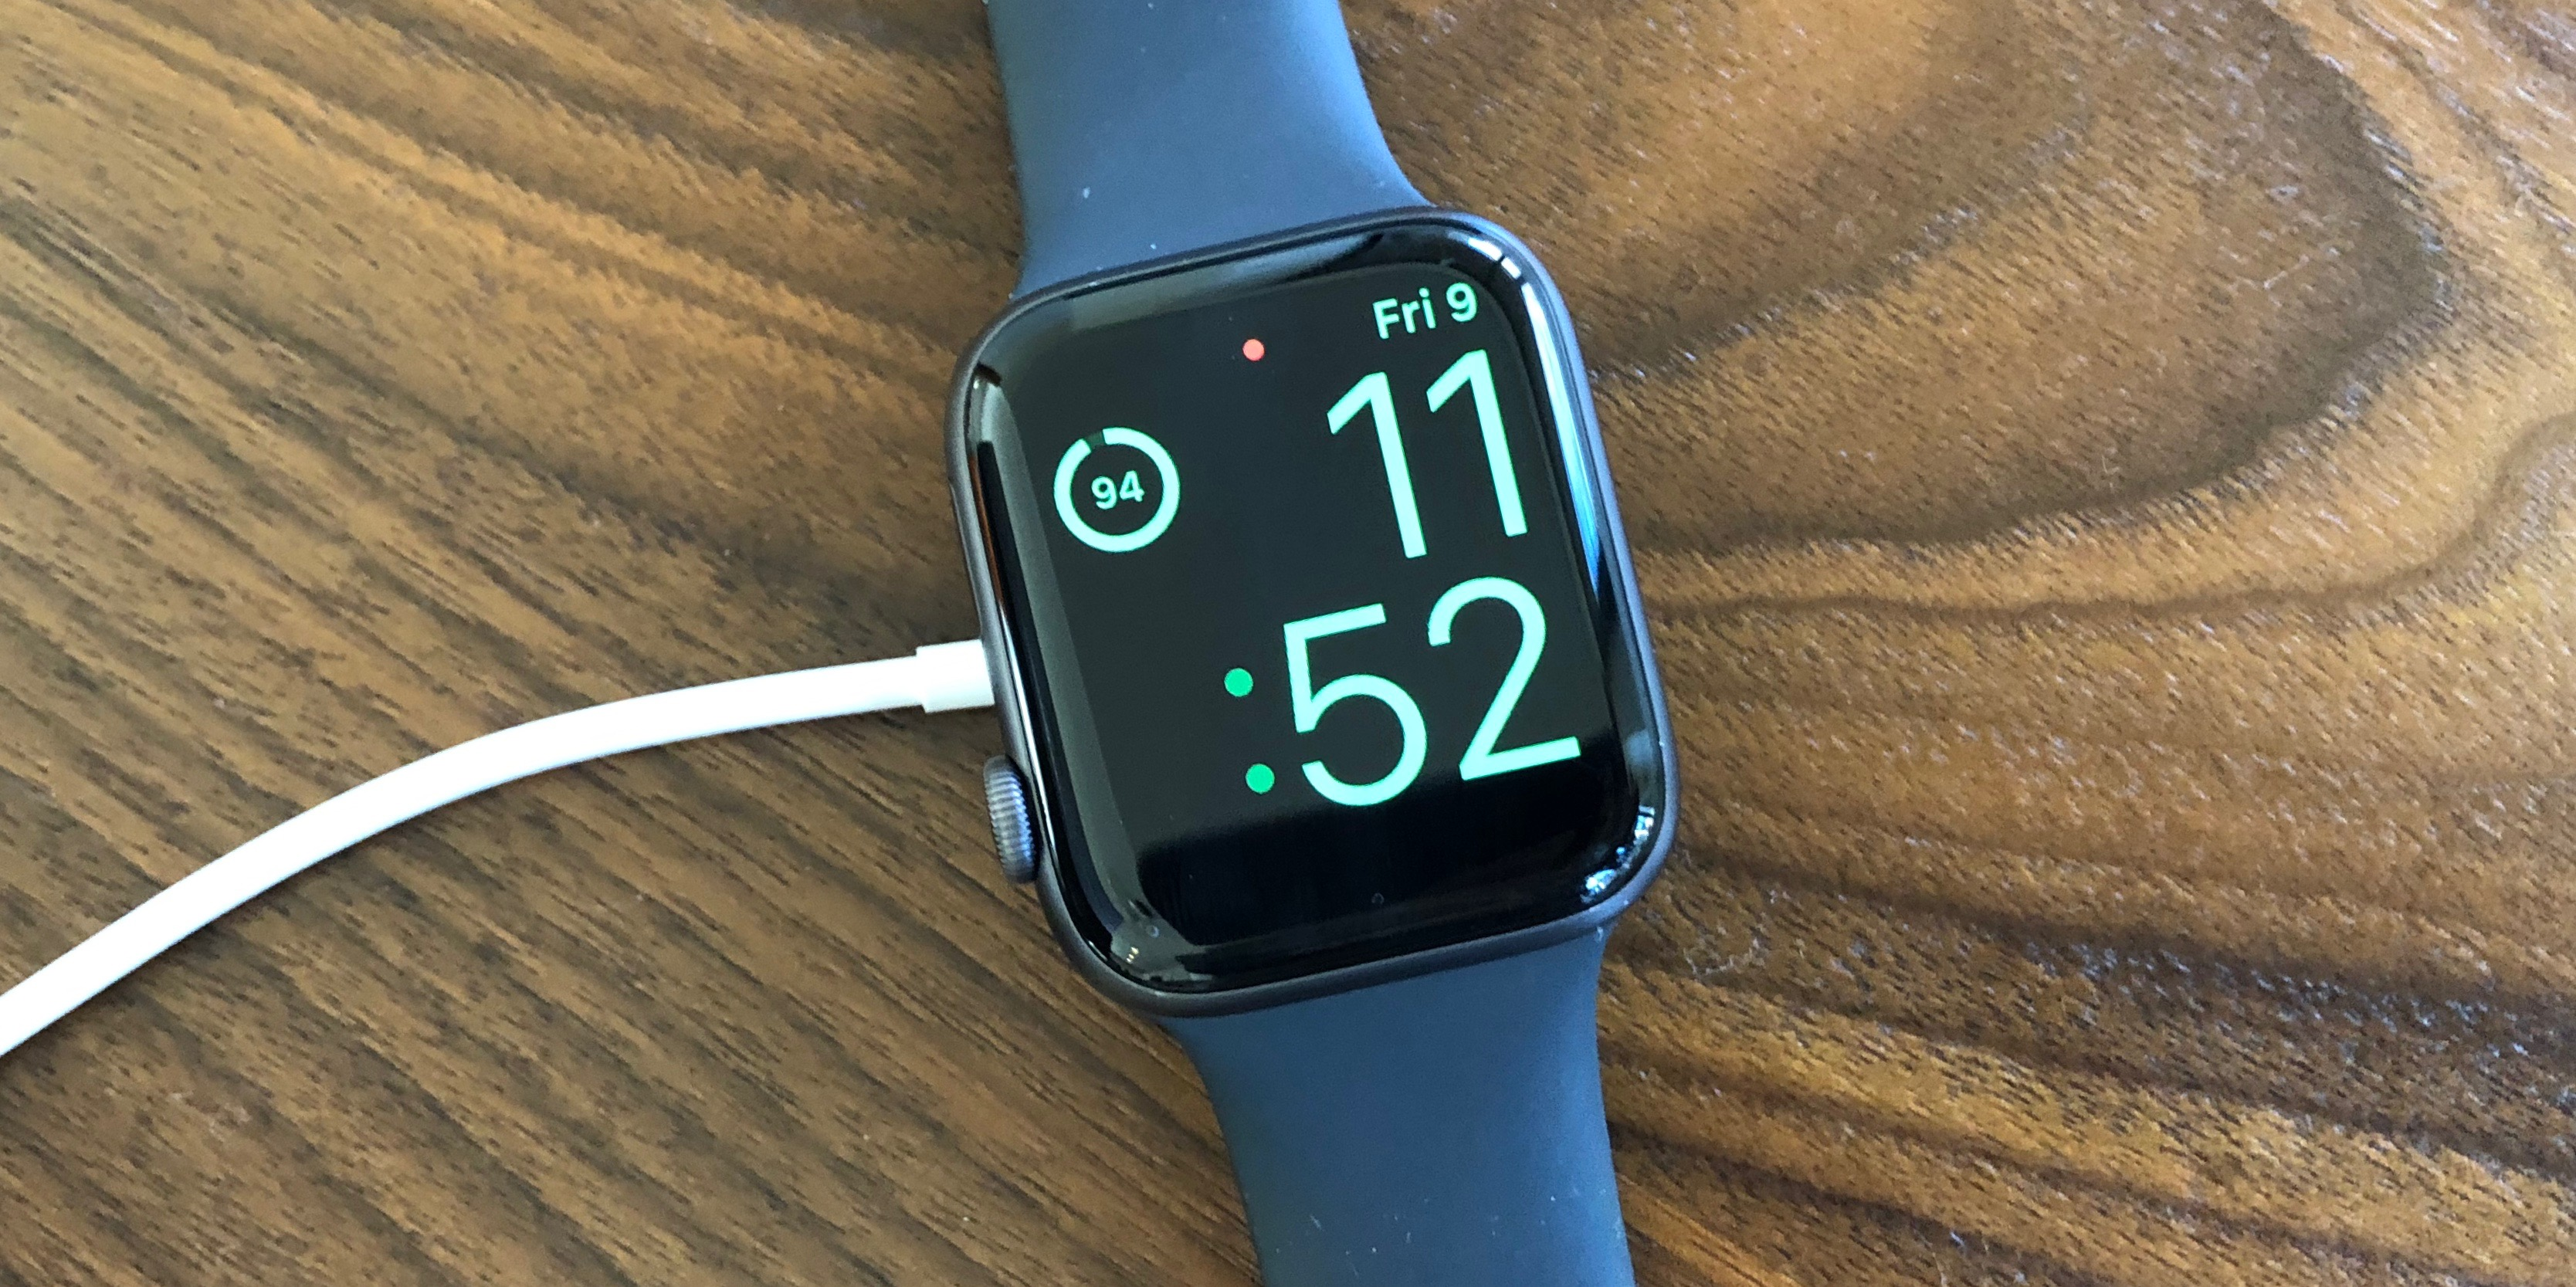 how to charge apple watch and check battery life 9to5mac